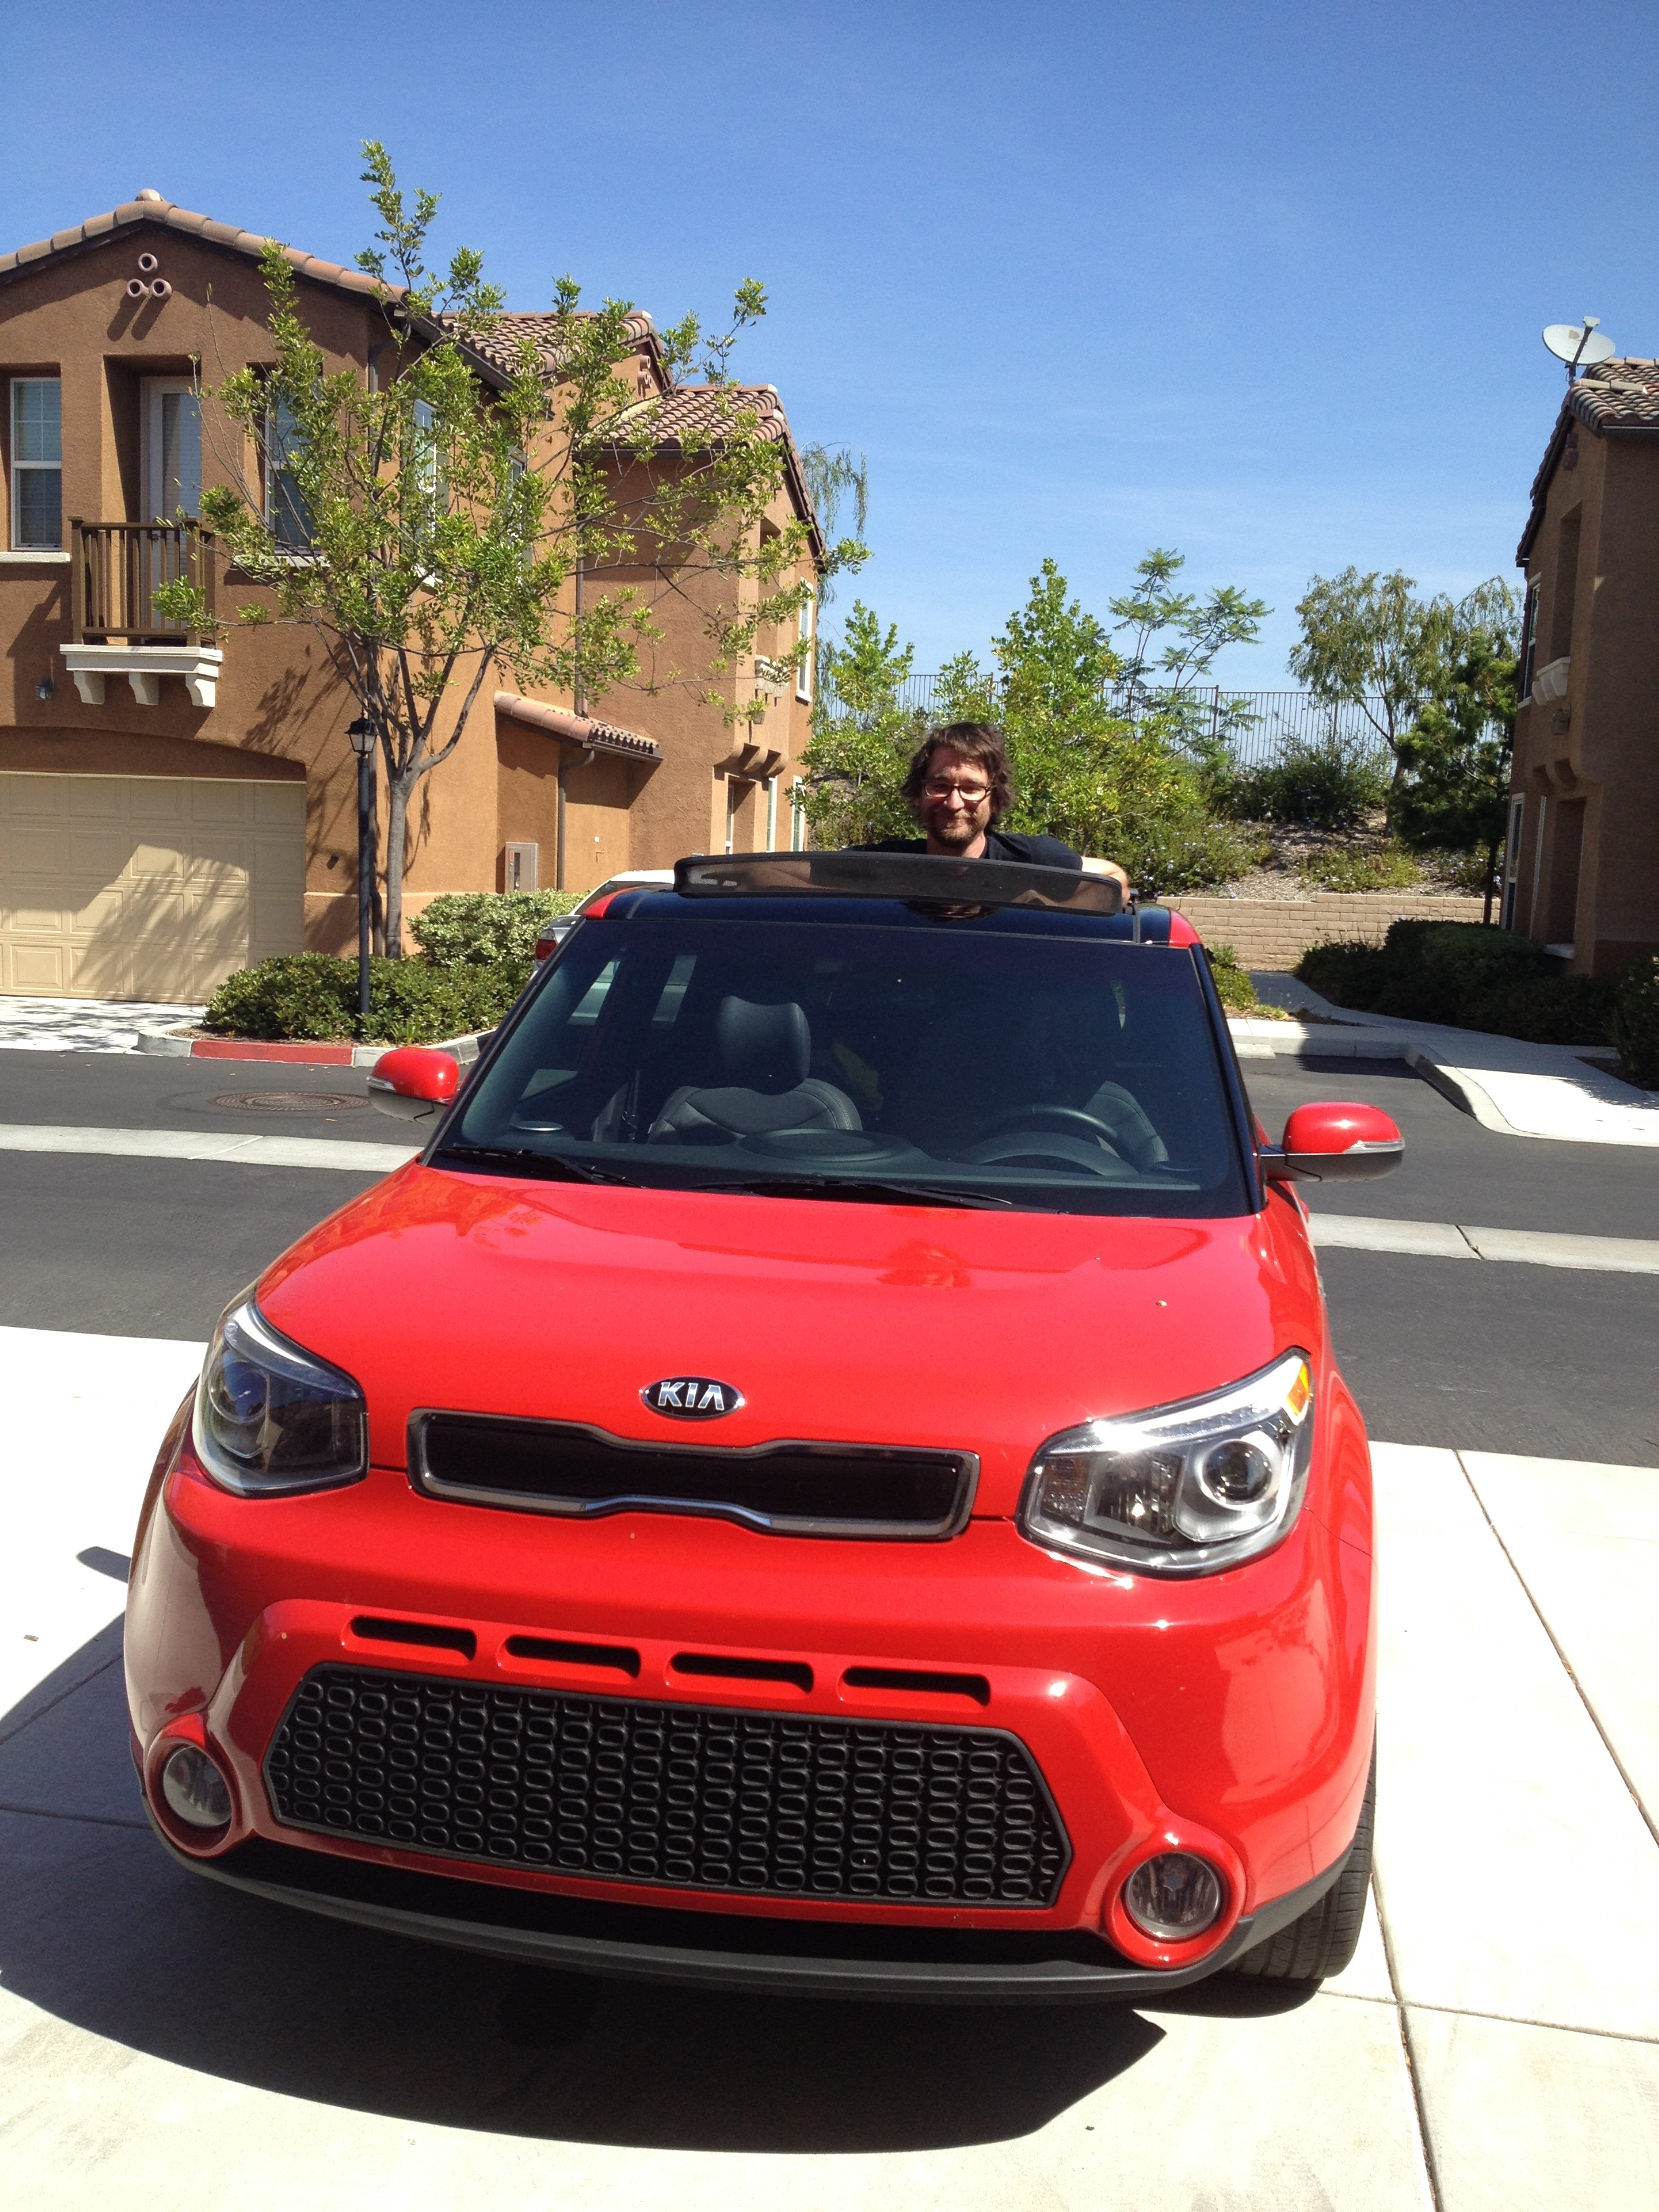 20140517 170946000 iOS e1408670713165 Discovering North County San Diegos Best Skateparks with a Kia Soul